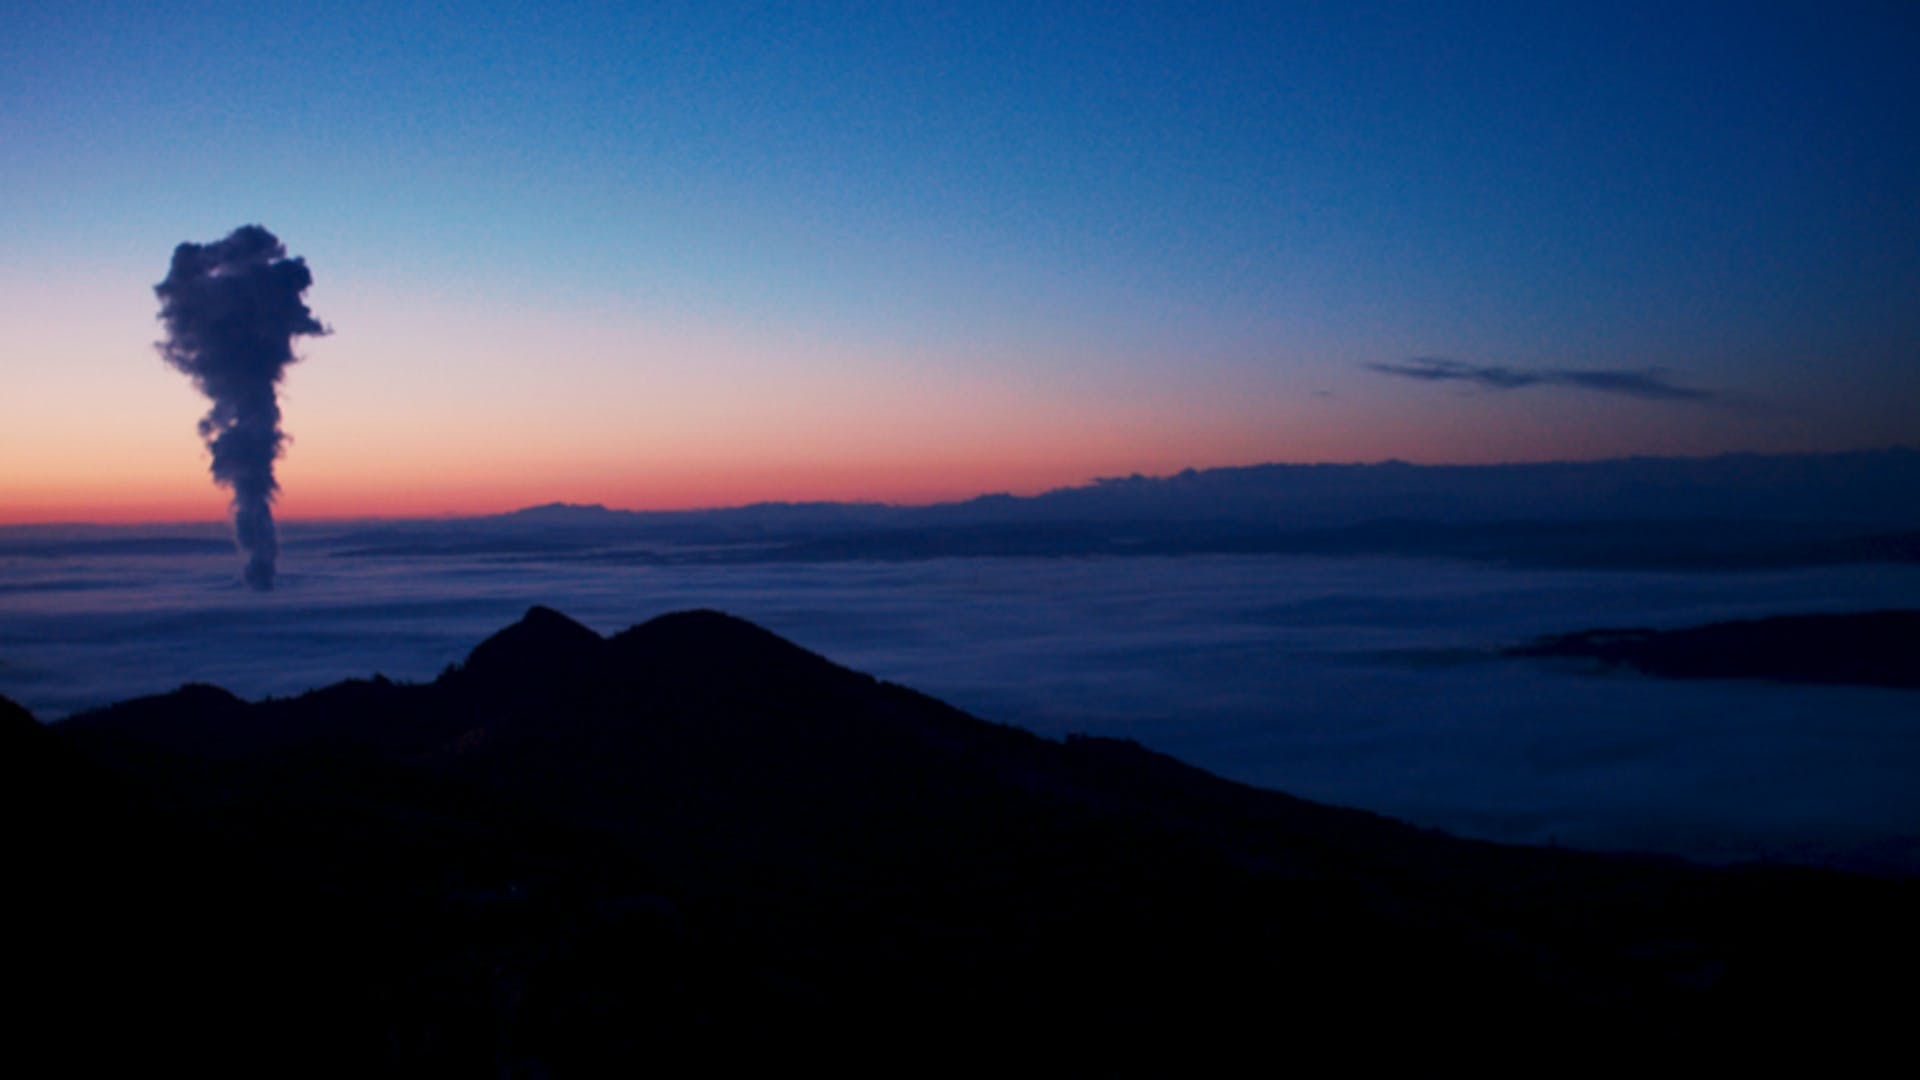 Image of sunrise with mountain in foreground